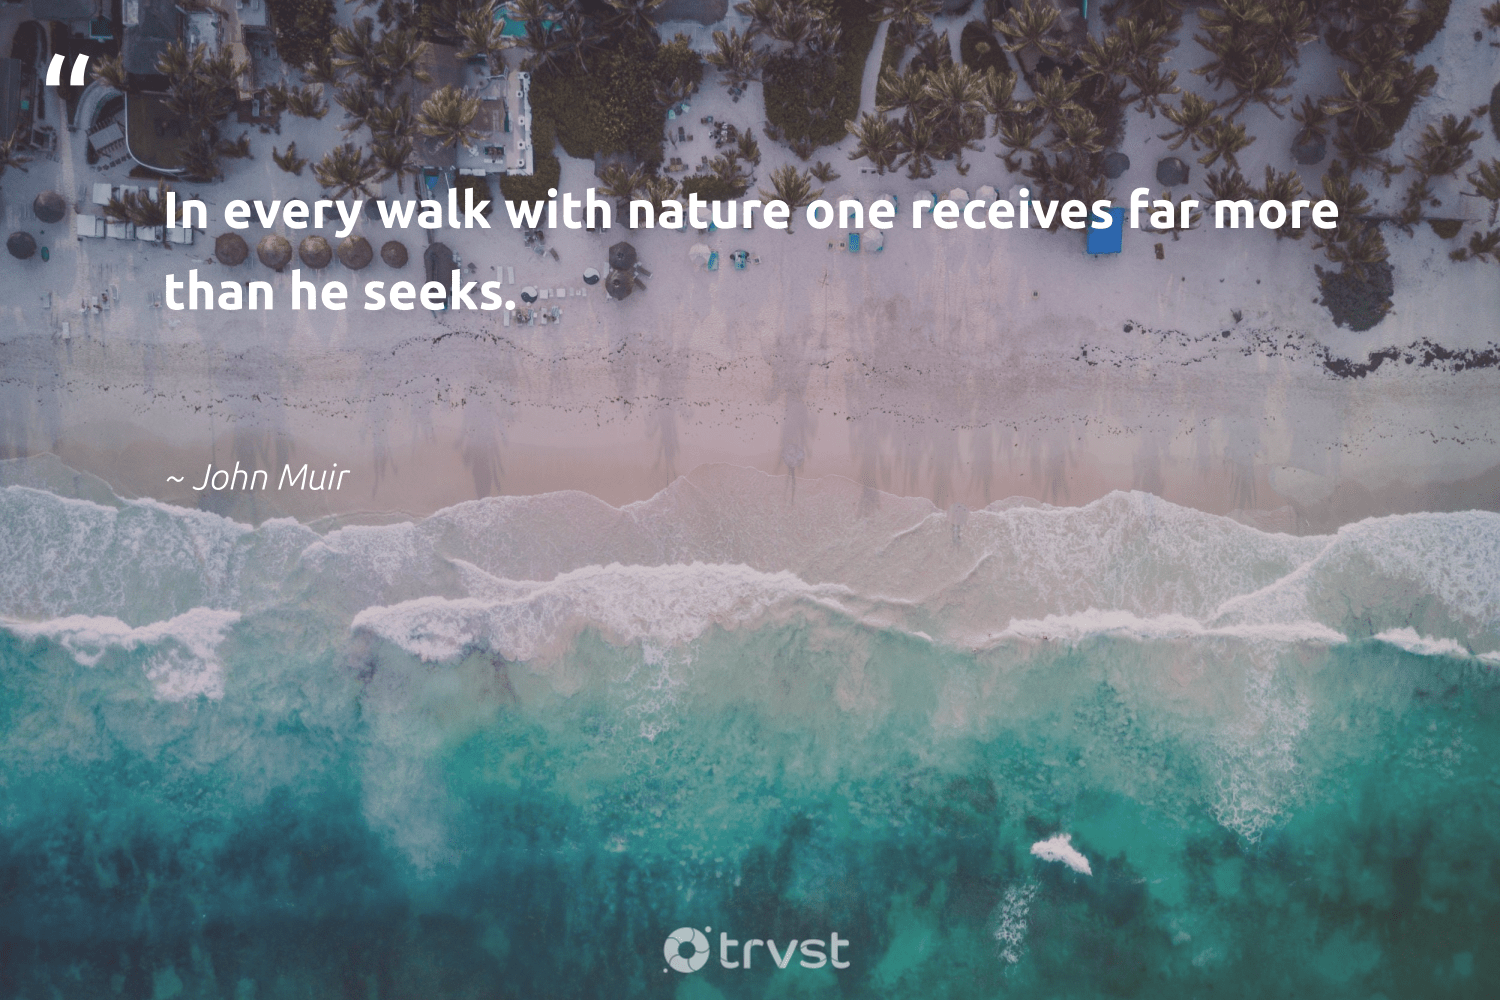 """""""In every walk with nature one receives far more than he seeks.""""  - John Muir #trvst #quotes #environment #nature #earth #climatechange #ecofriendly #thinkgreen #planet #sustainability #noplanetb #impact"""